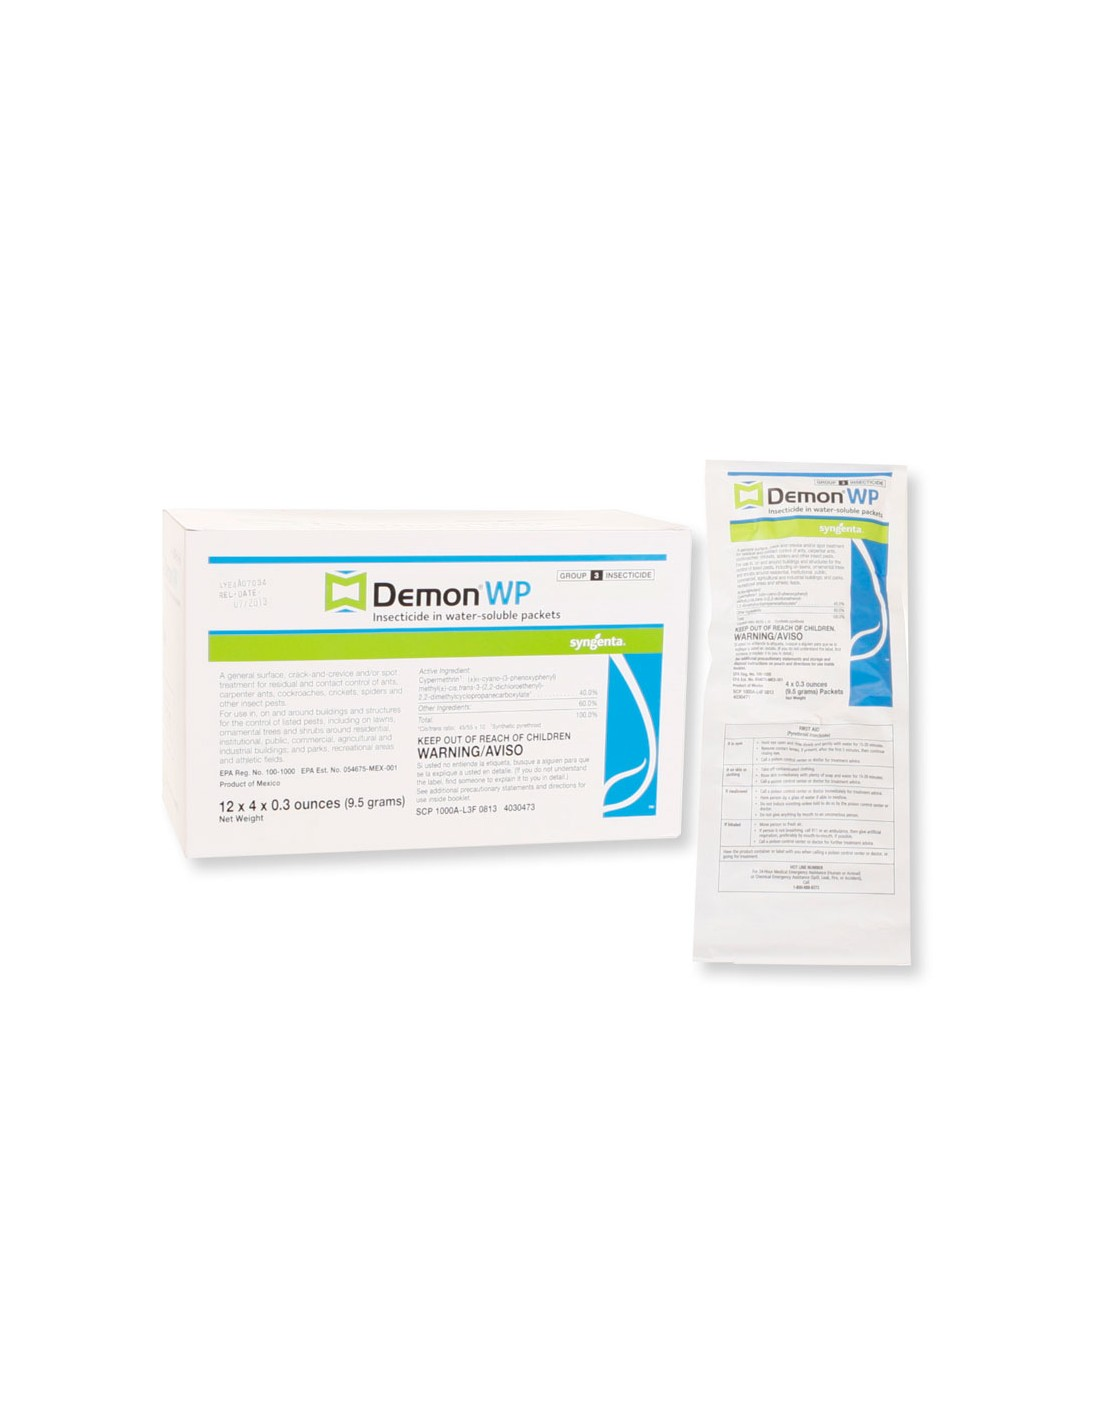 We have a large bottle of Demon WP ,  (1 lb.) have had it for several years, what is the shelf life of the product?